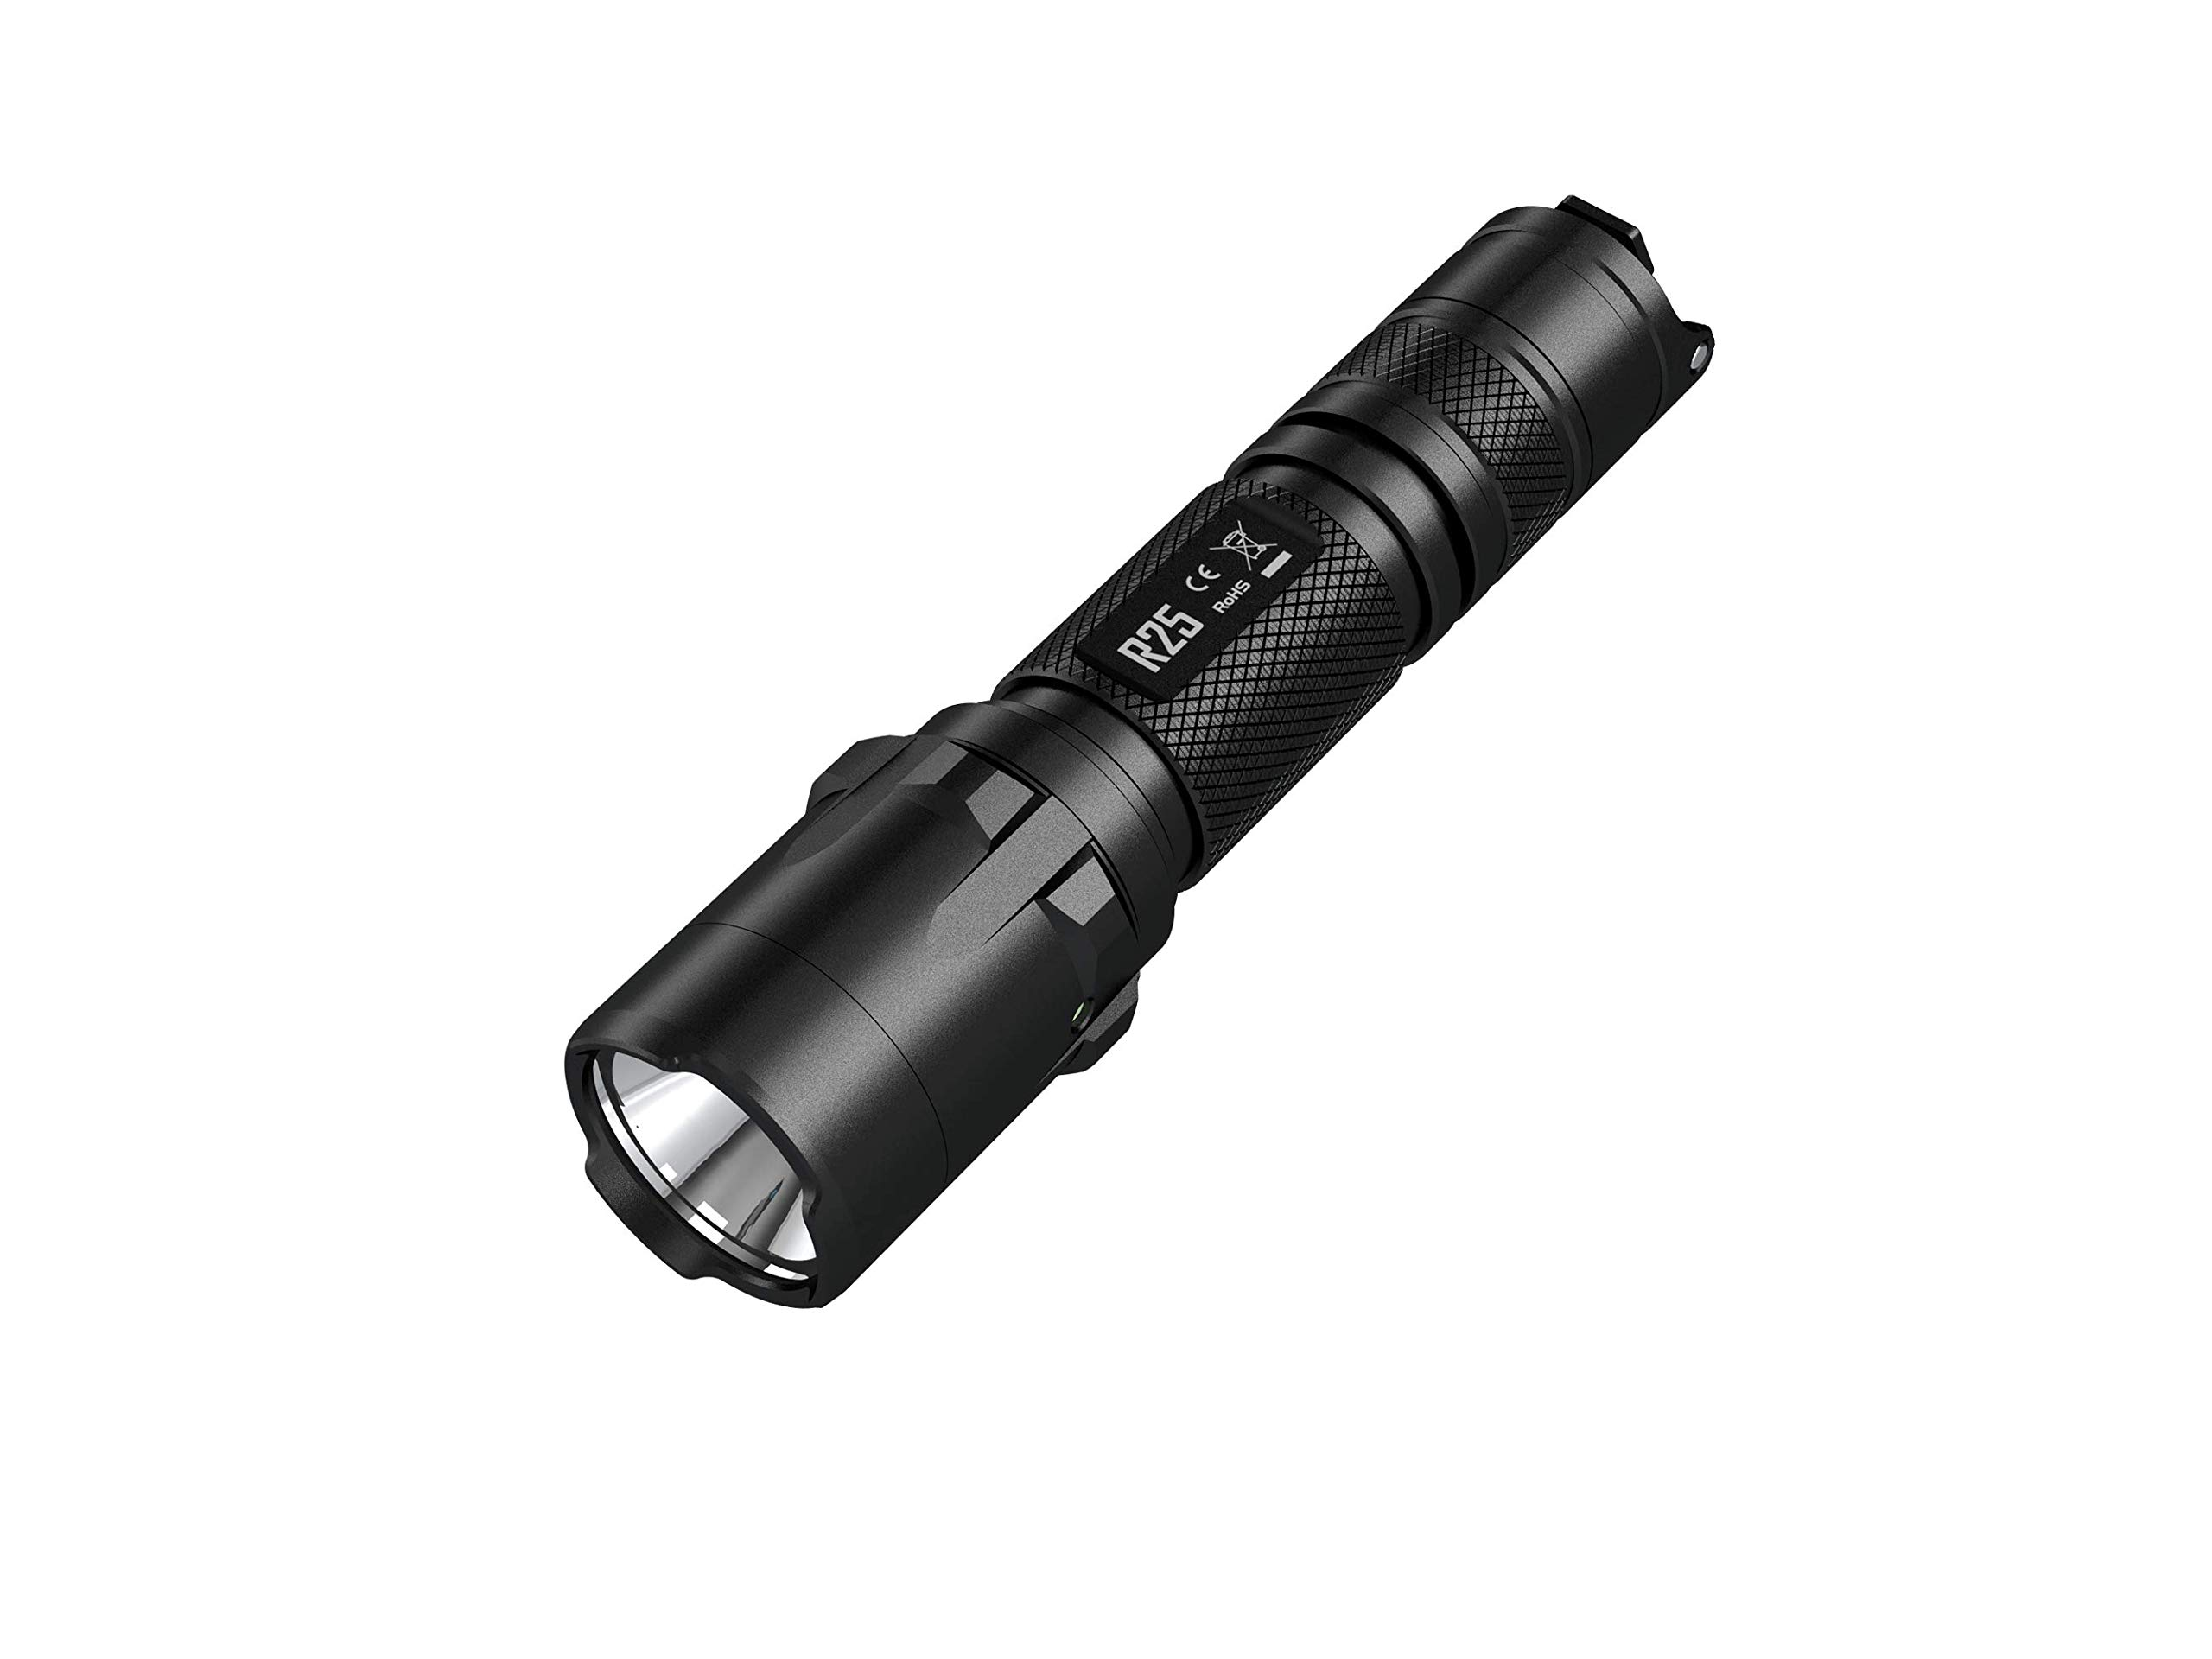 Linternas : Nitecore Sysmax Industrial R25 Rechargeable...